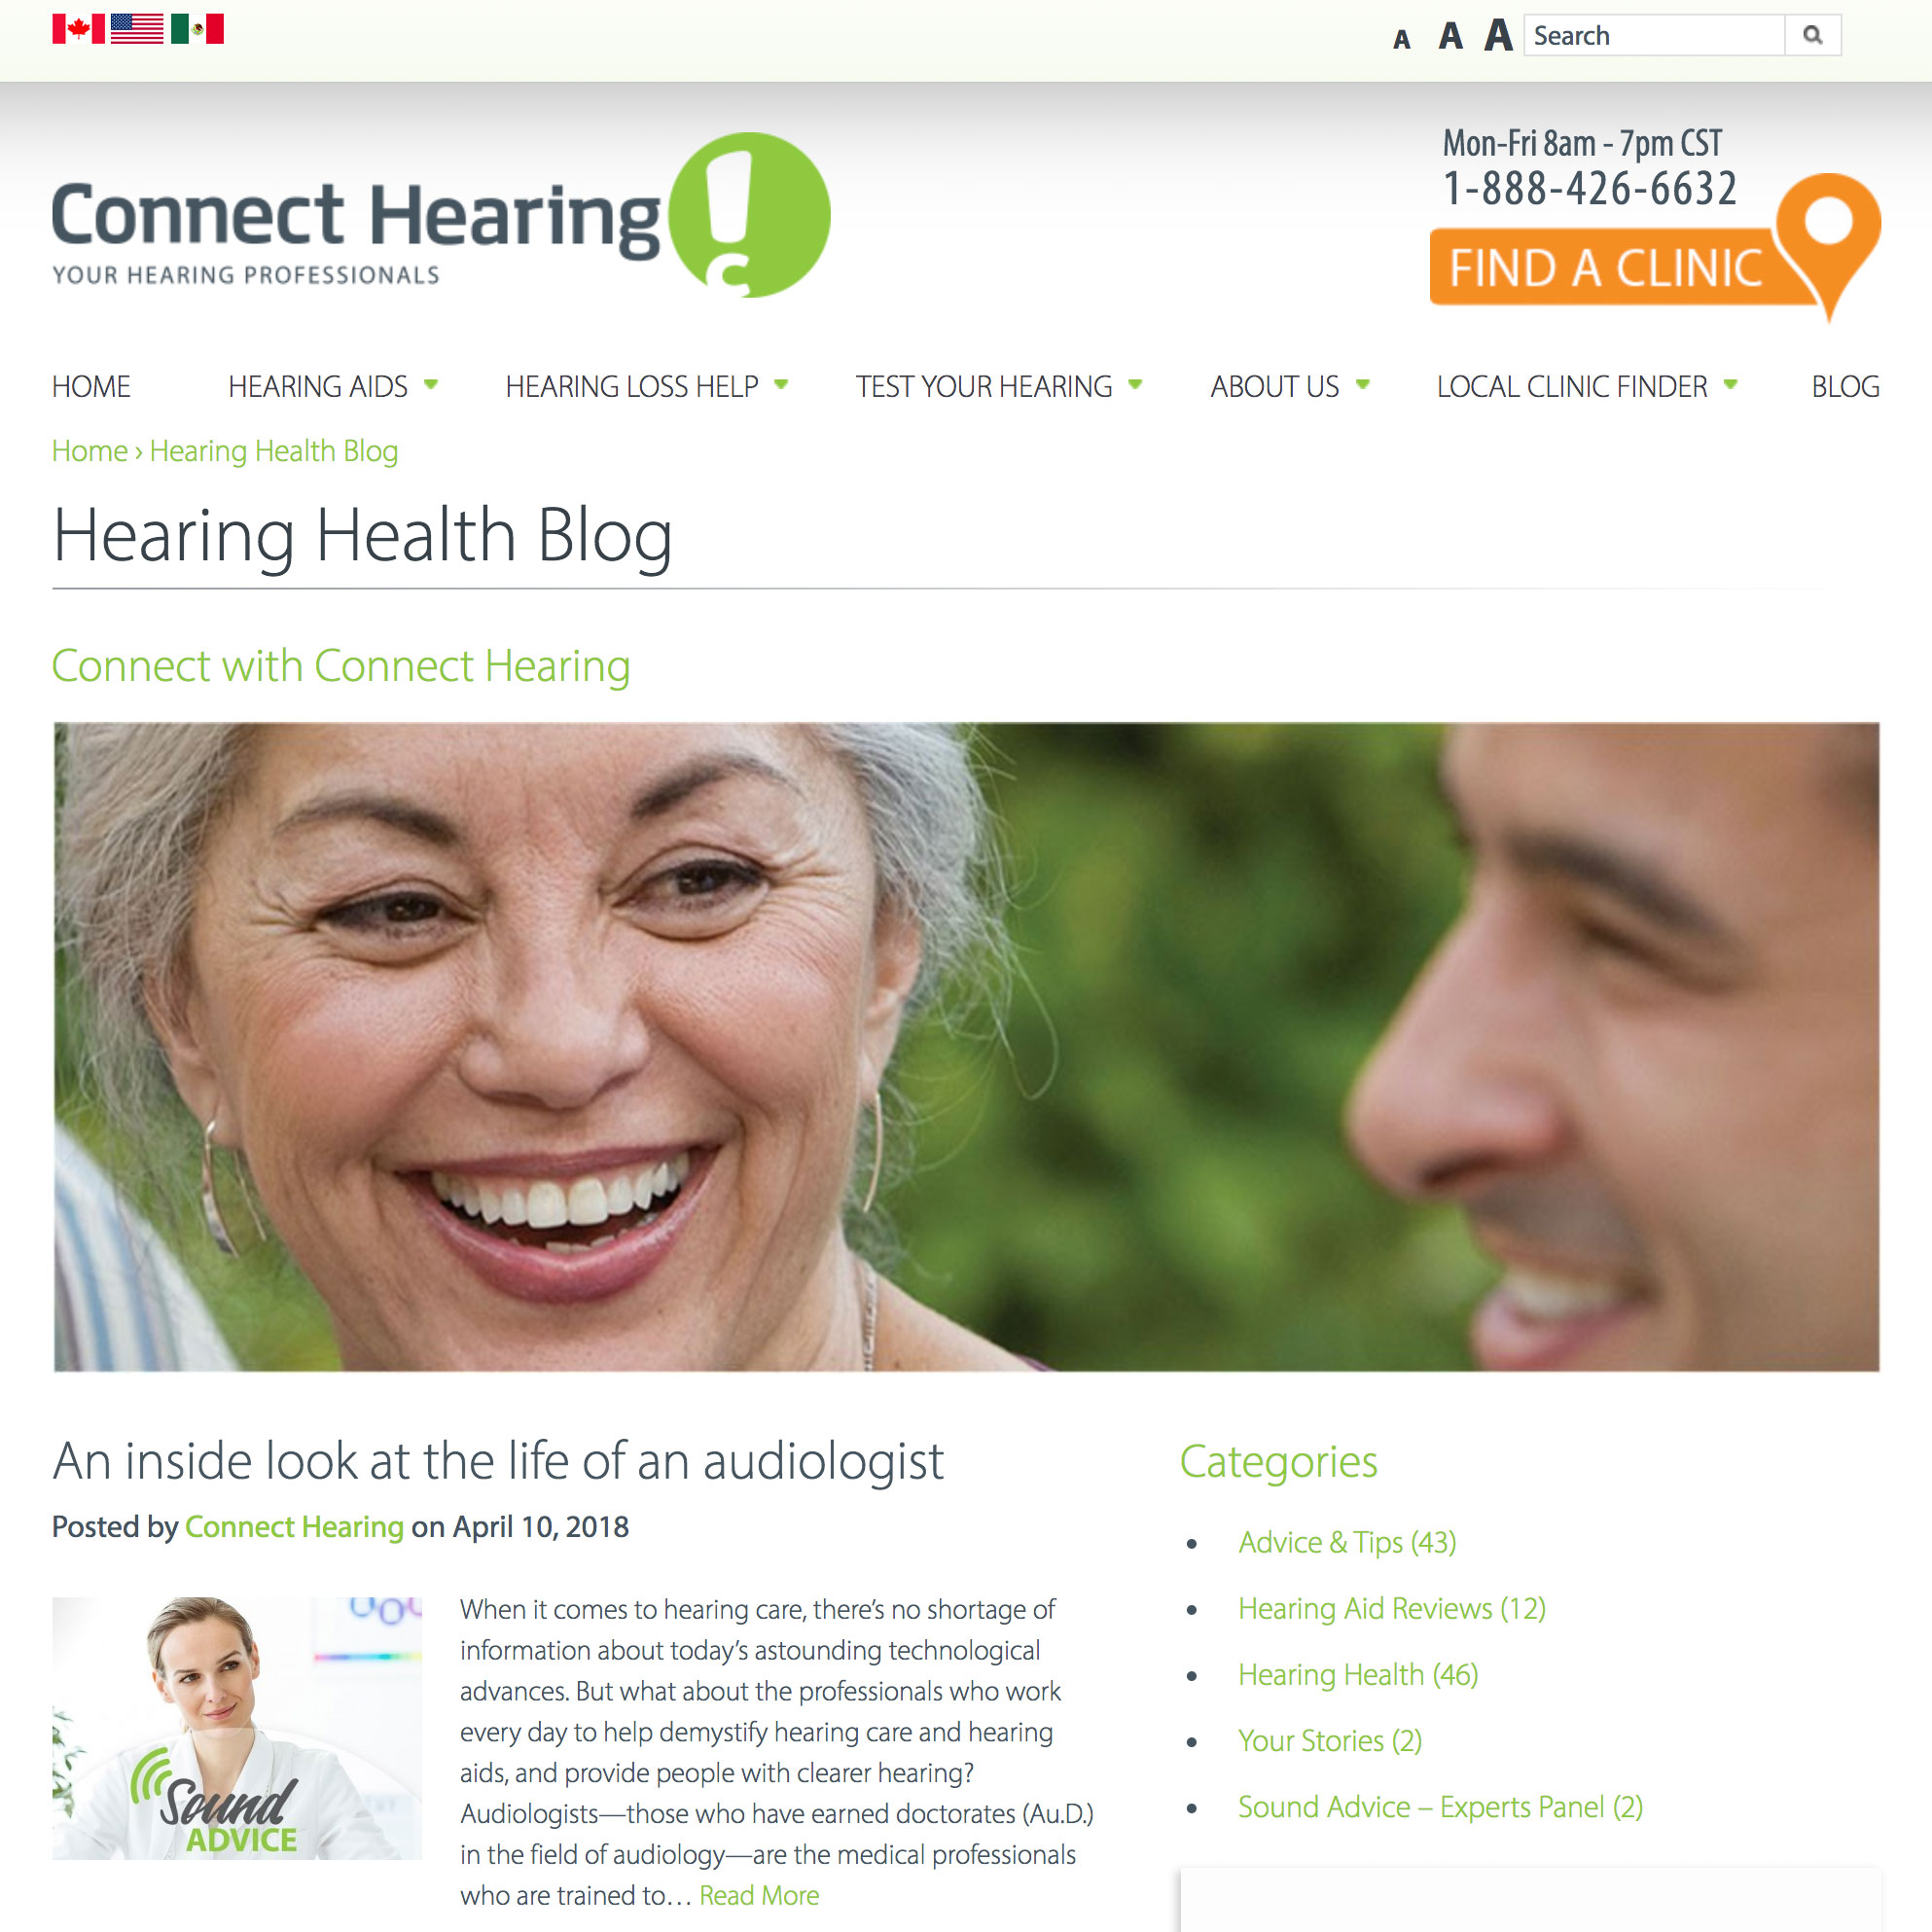 Screenshot of Connect Hearing website Hearing Health blog